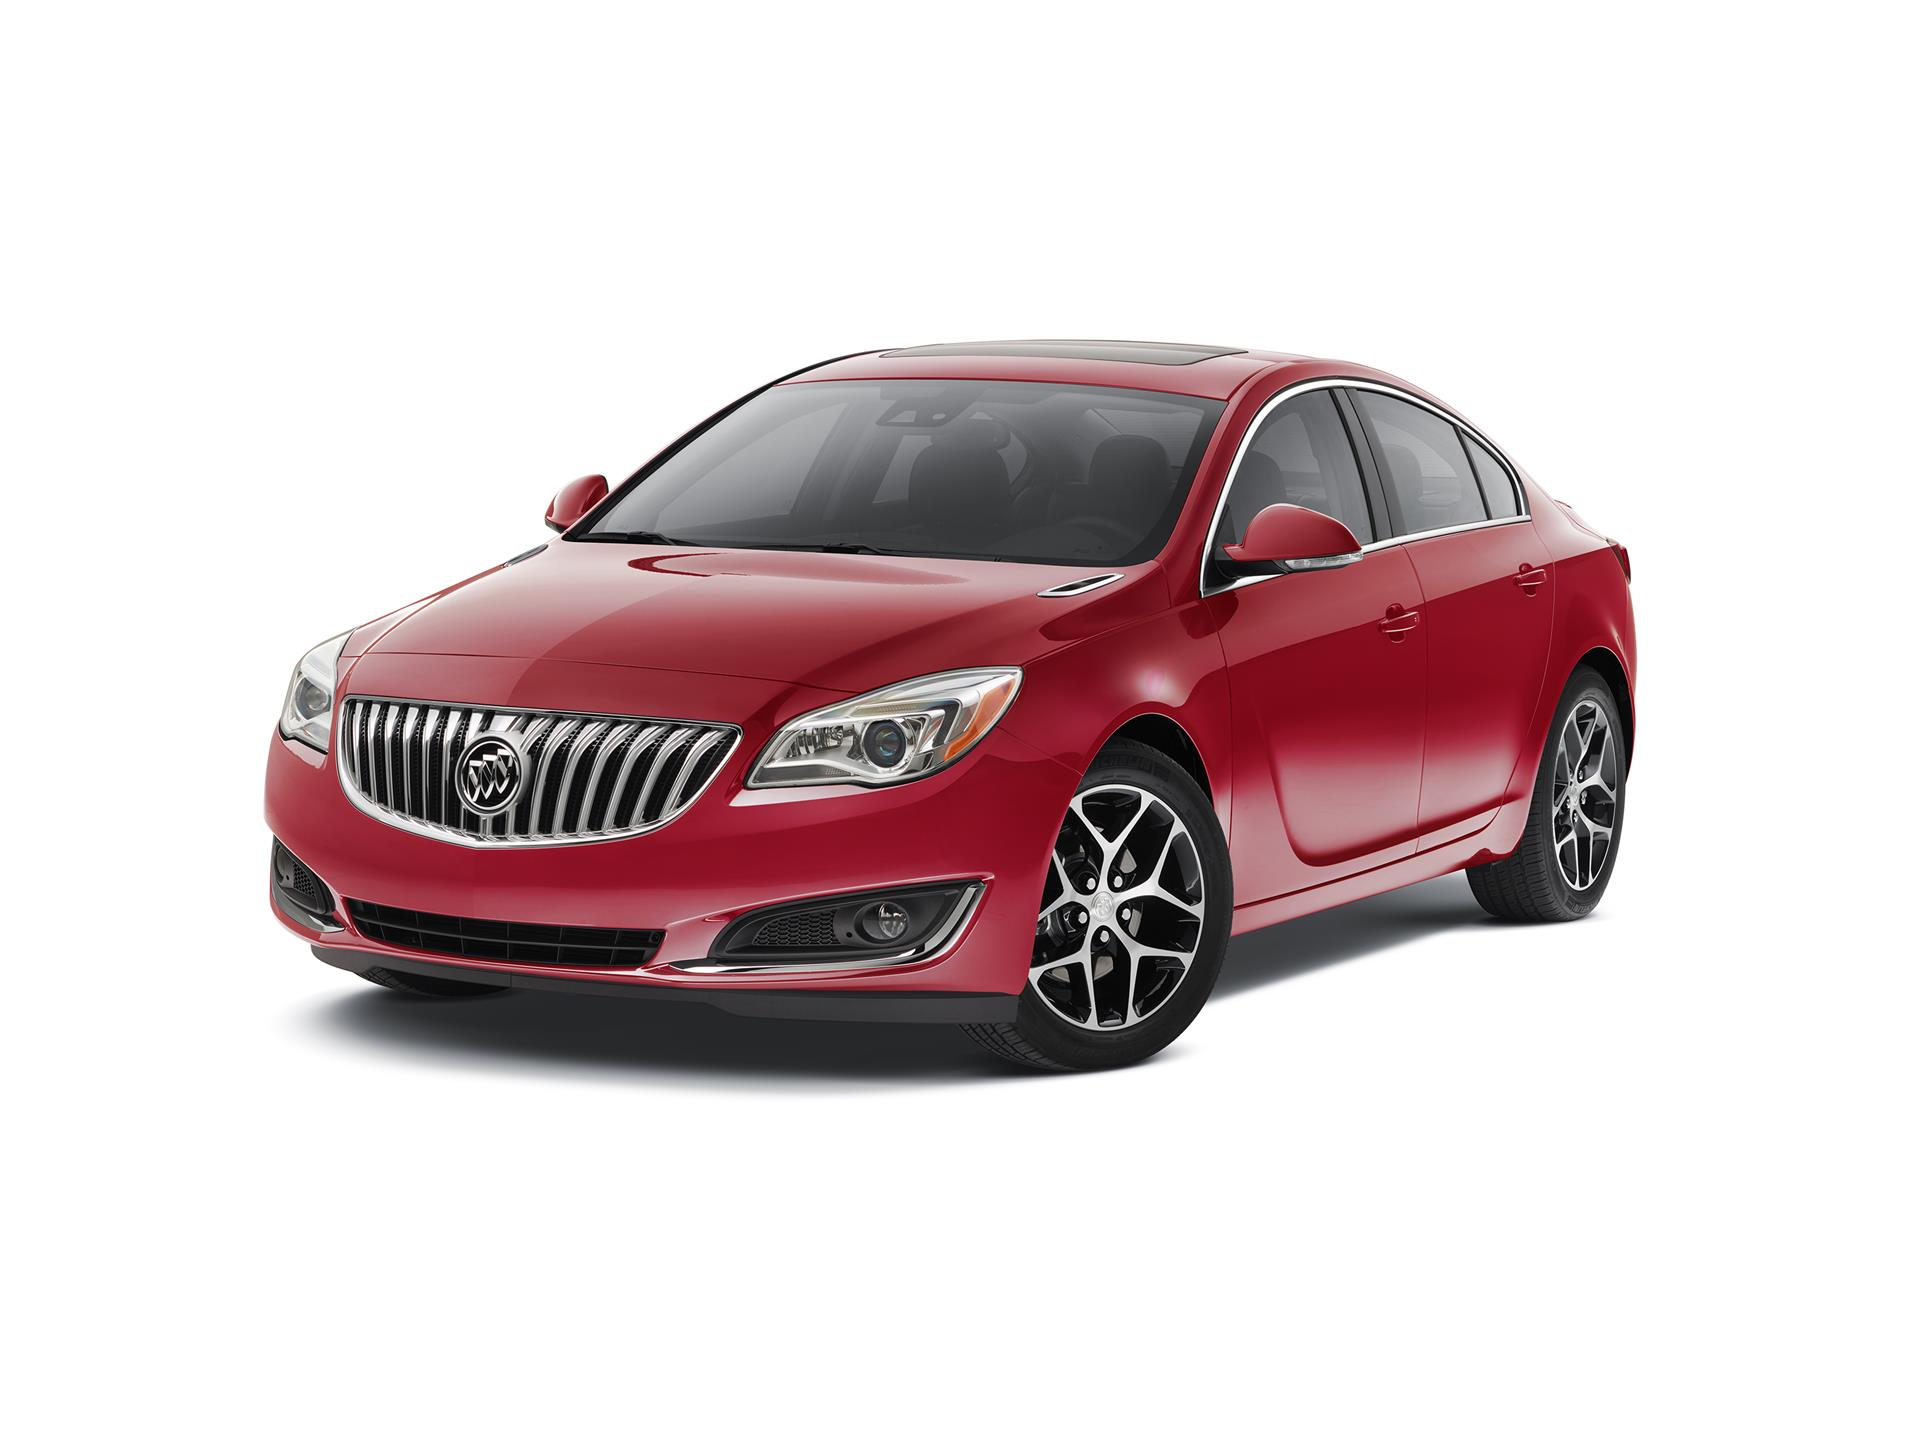 2016 buick regal sport touring news and information. Black Bedroom Furniture Sets. Home Design Ideas